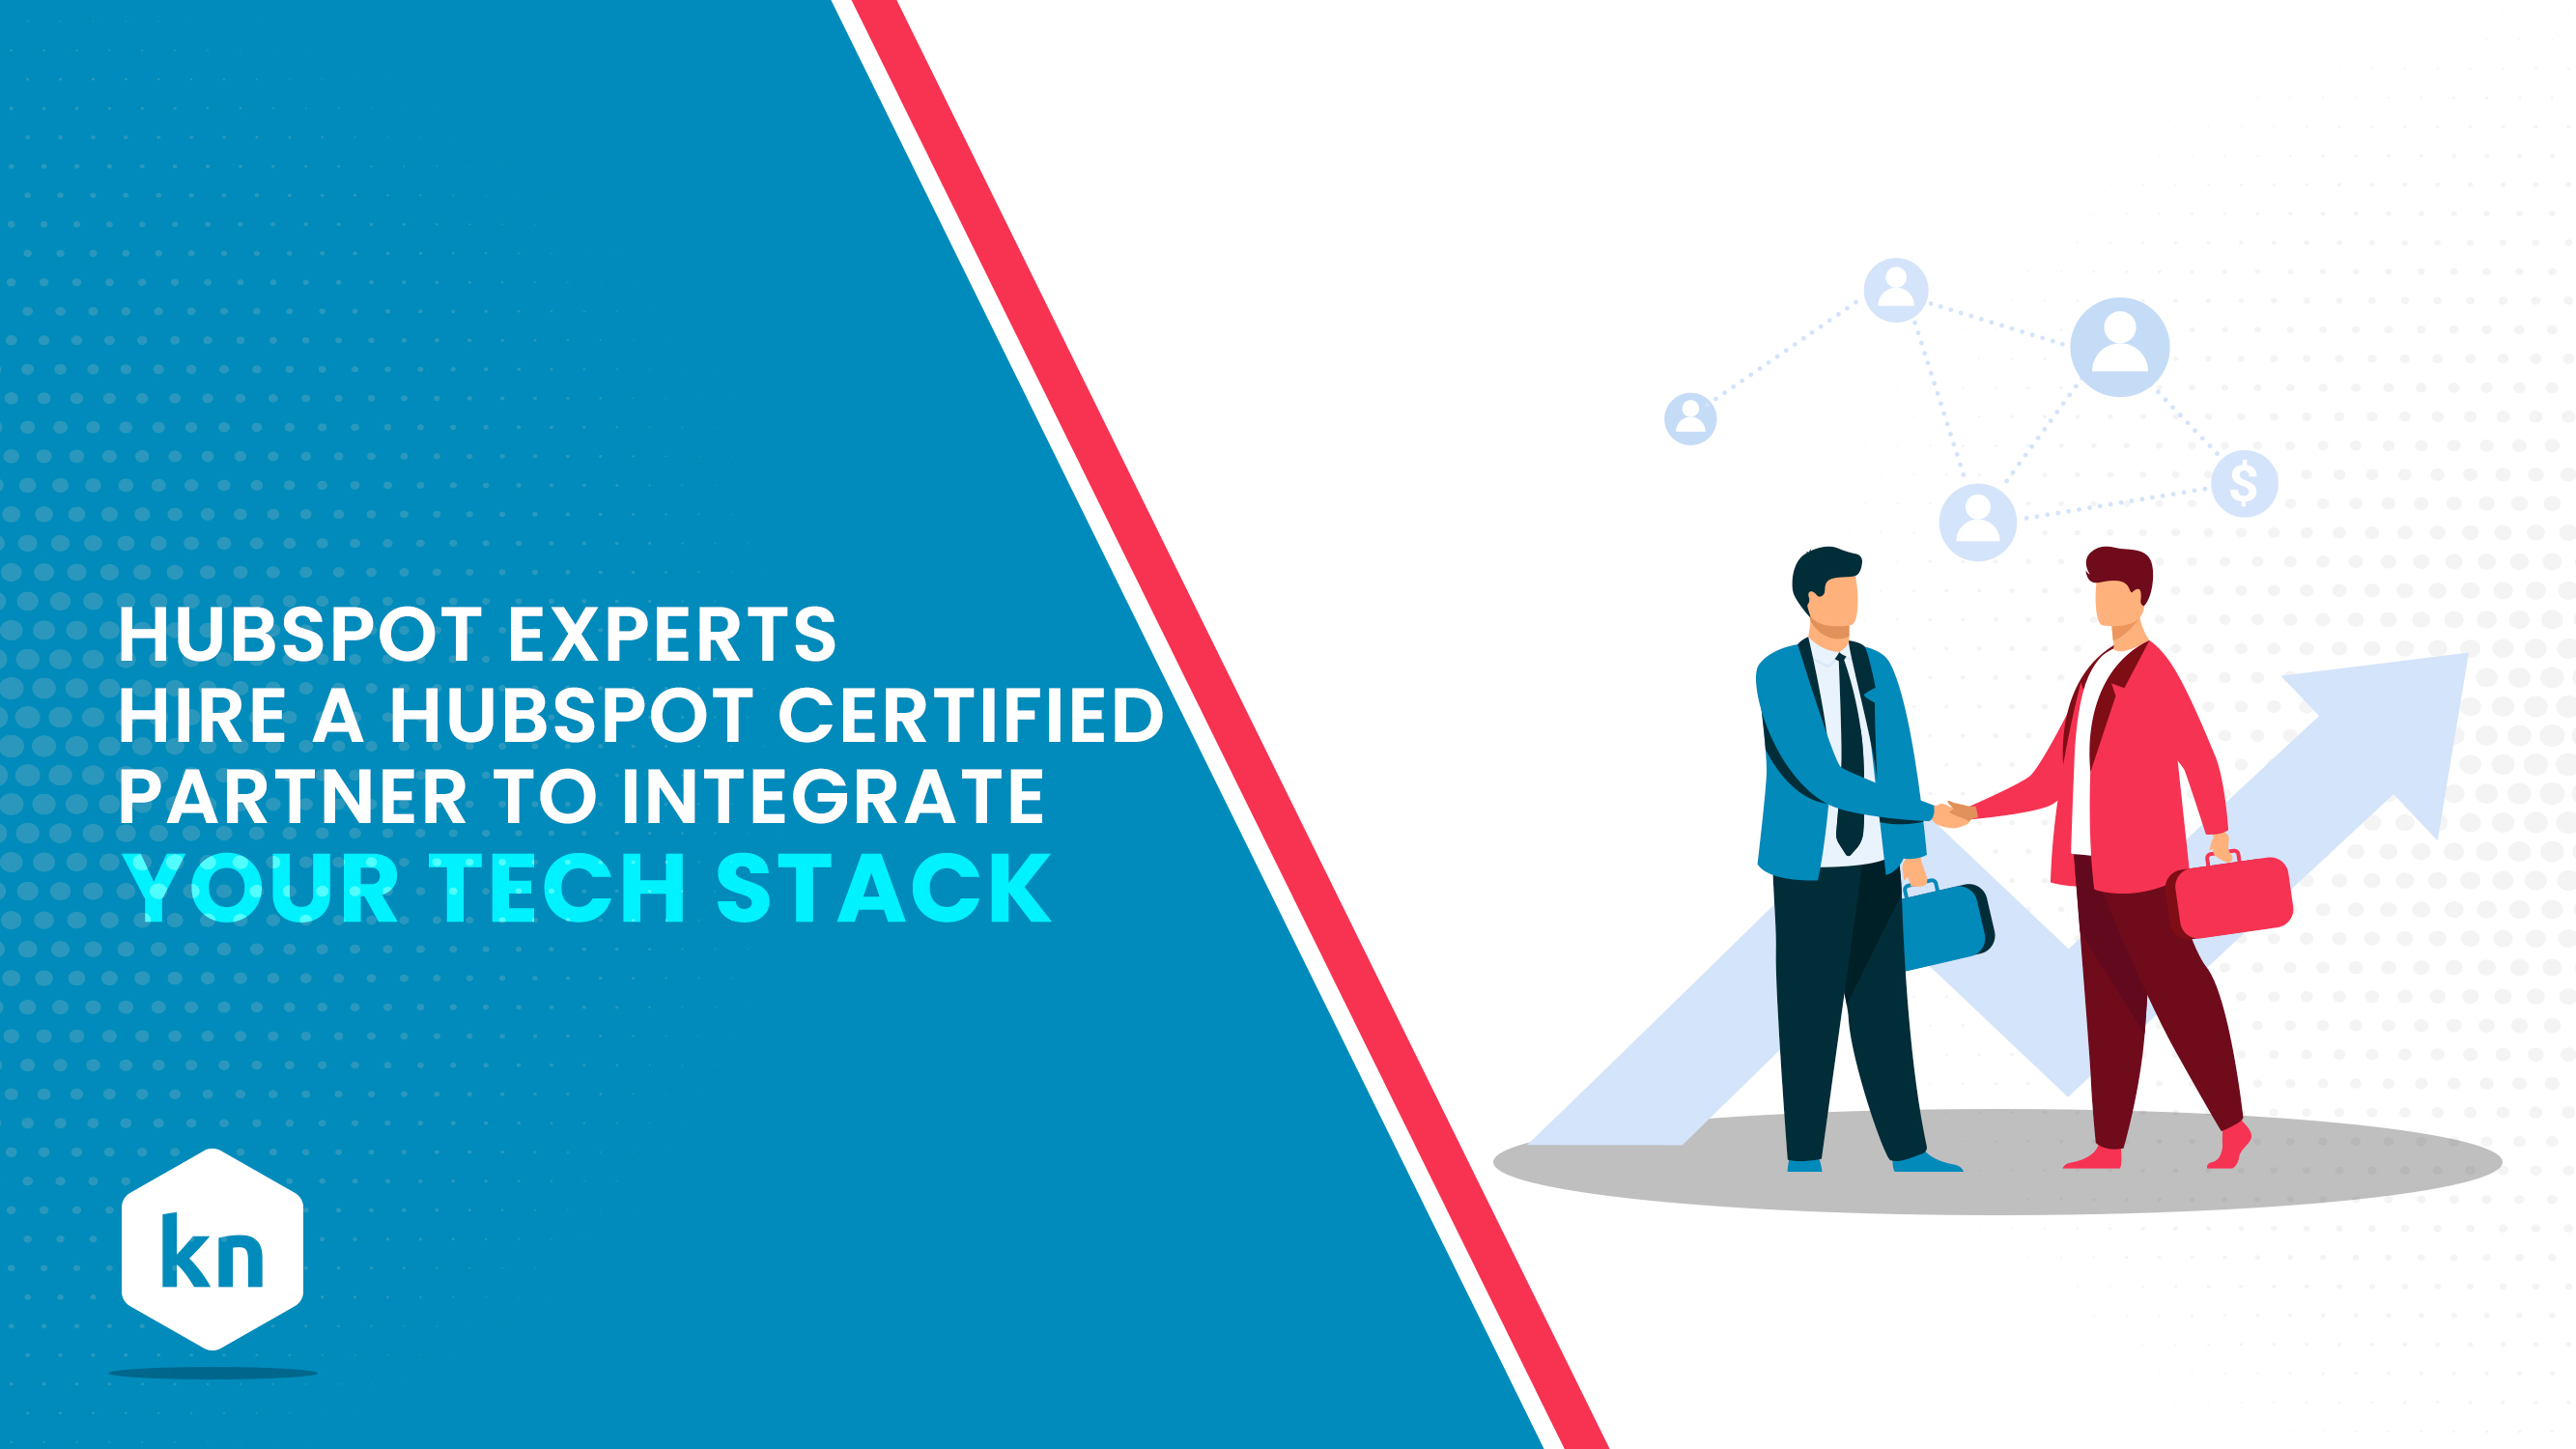 HubSpot Experts: Hire A HubSpot Certified Partner To Integrate Your Tech Stack